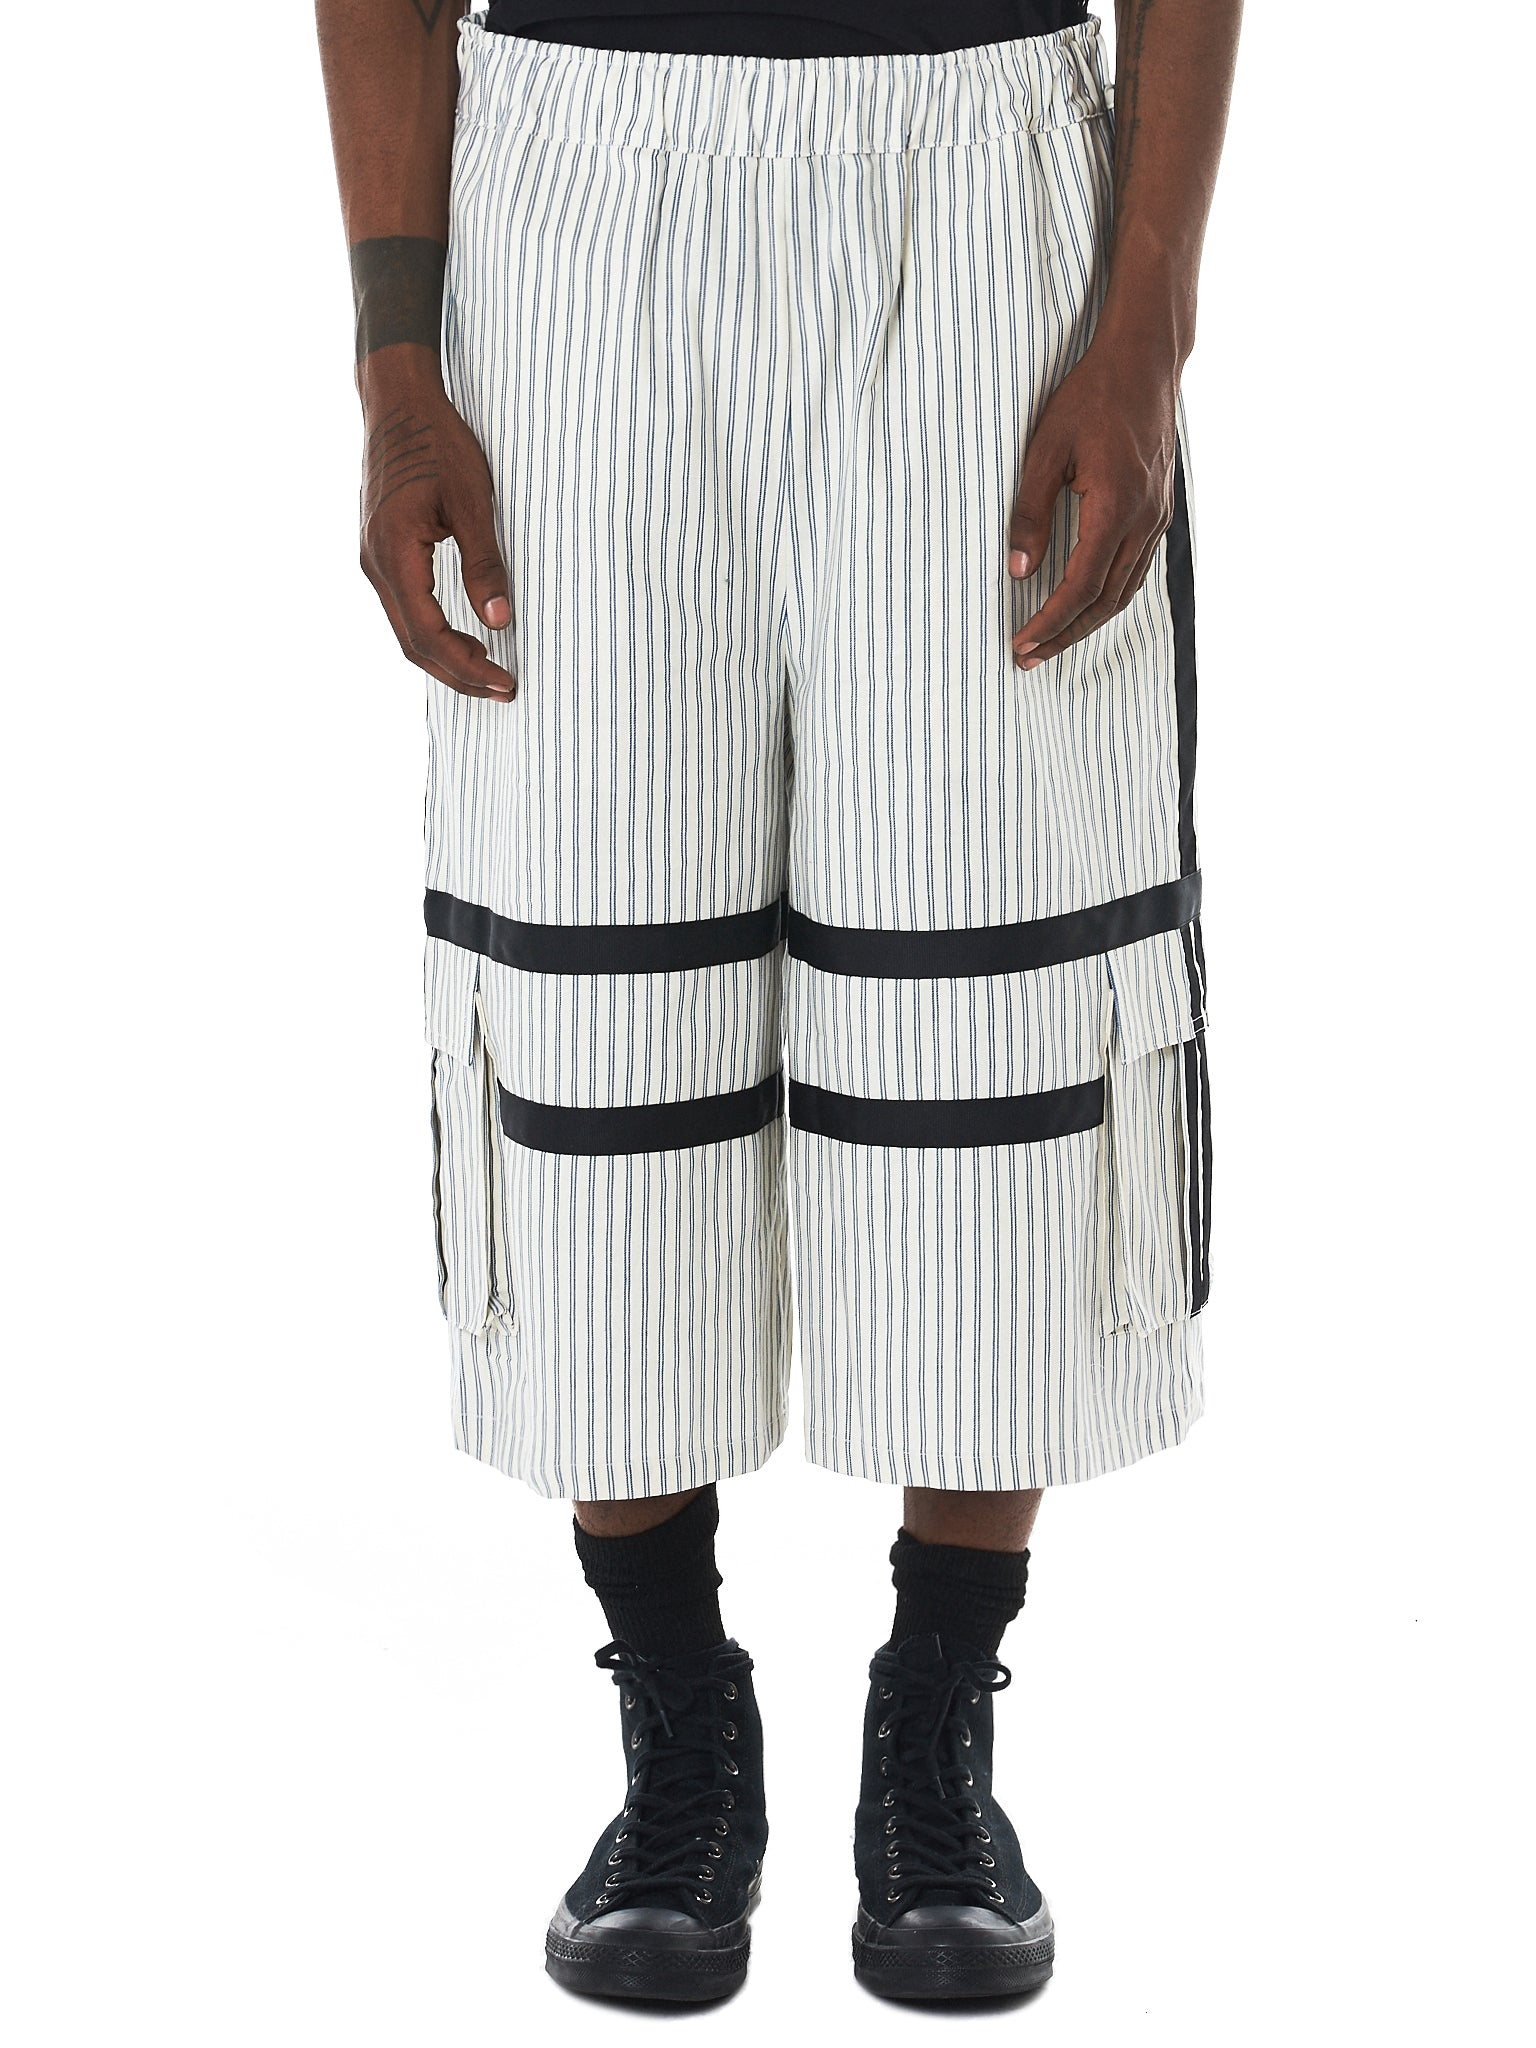 Astrid Andersen Striped Shorts - Hlorenzo Front